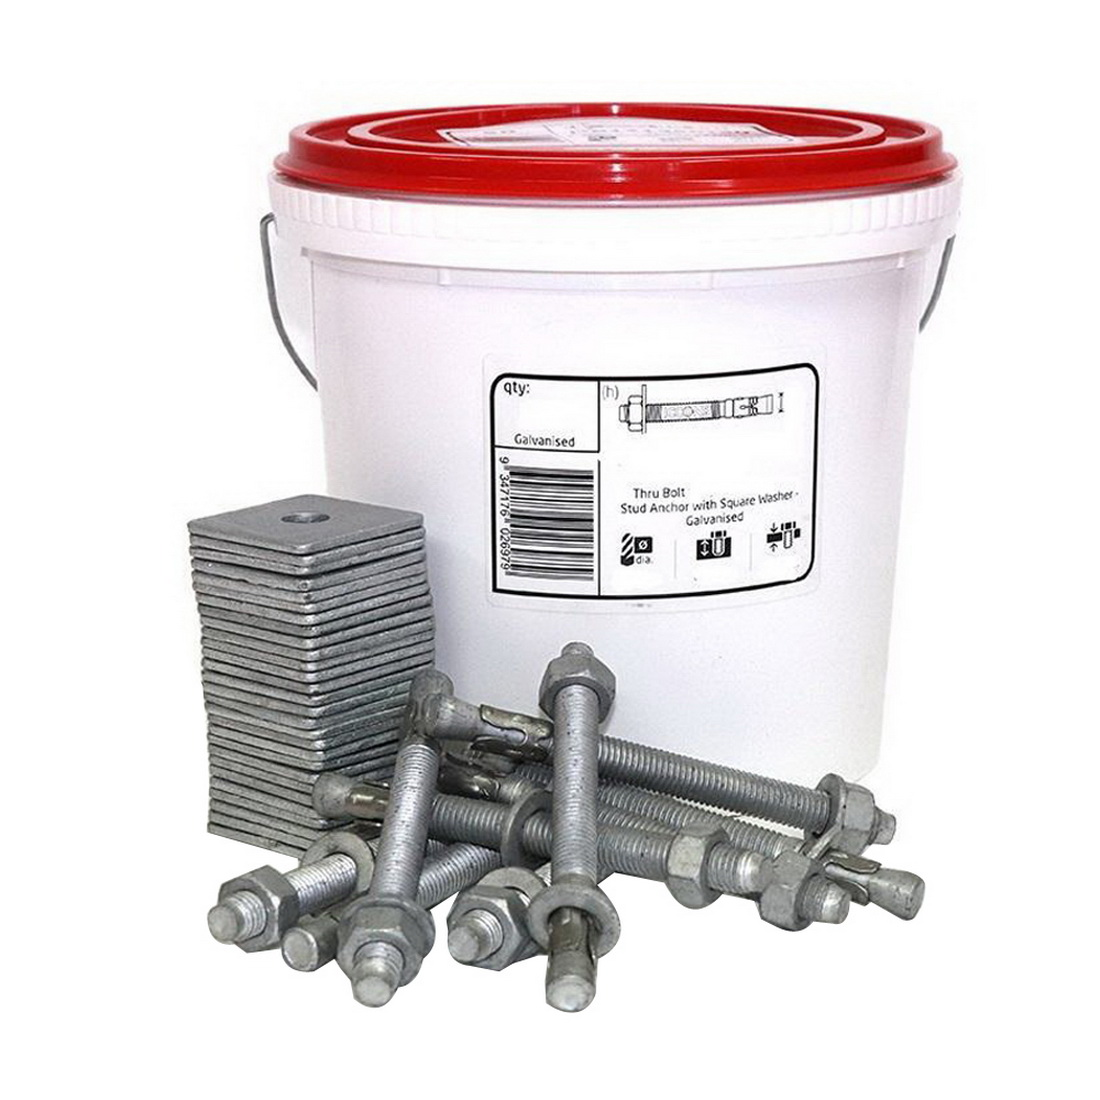 Hex Head Thru Bolt Bottom Plate Stud Anchor With Square Washer 12 x 135mm Galvanised 25 Tub